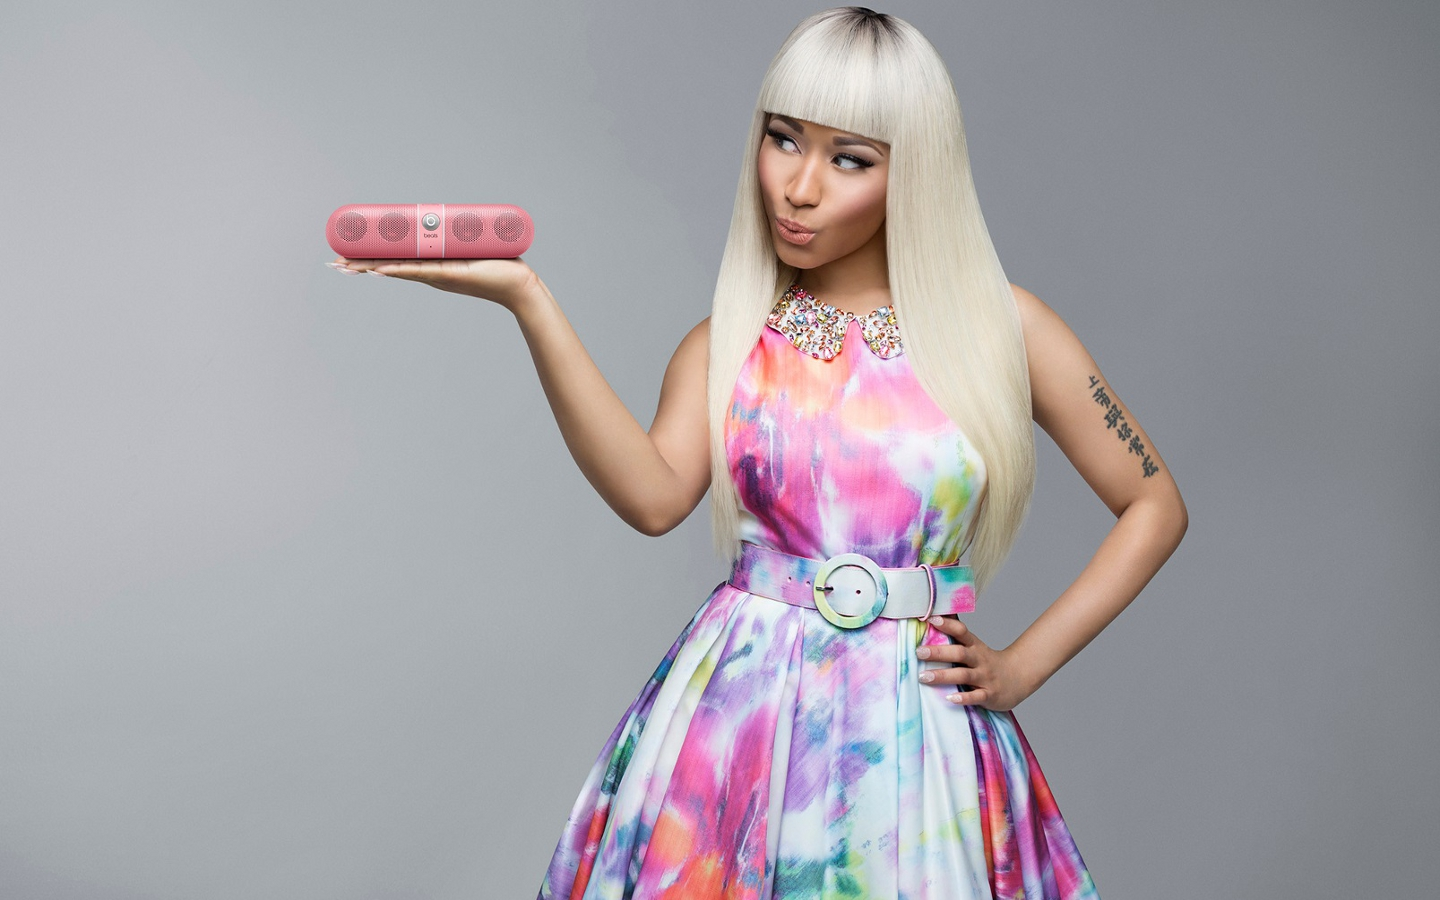 Nicki Minaj HD Wallpapers Pictures Hd Wallpapers 1440x900